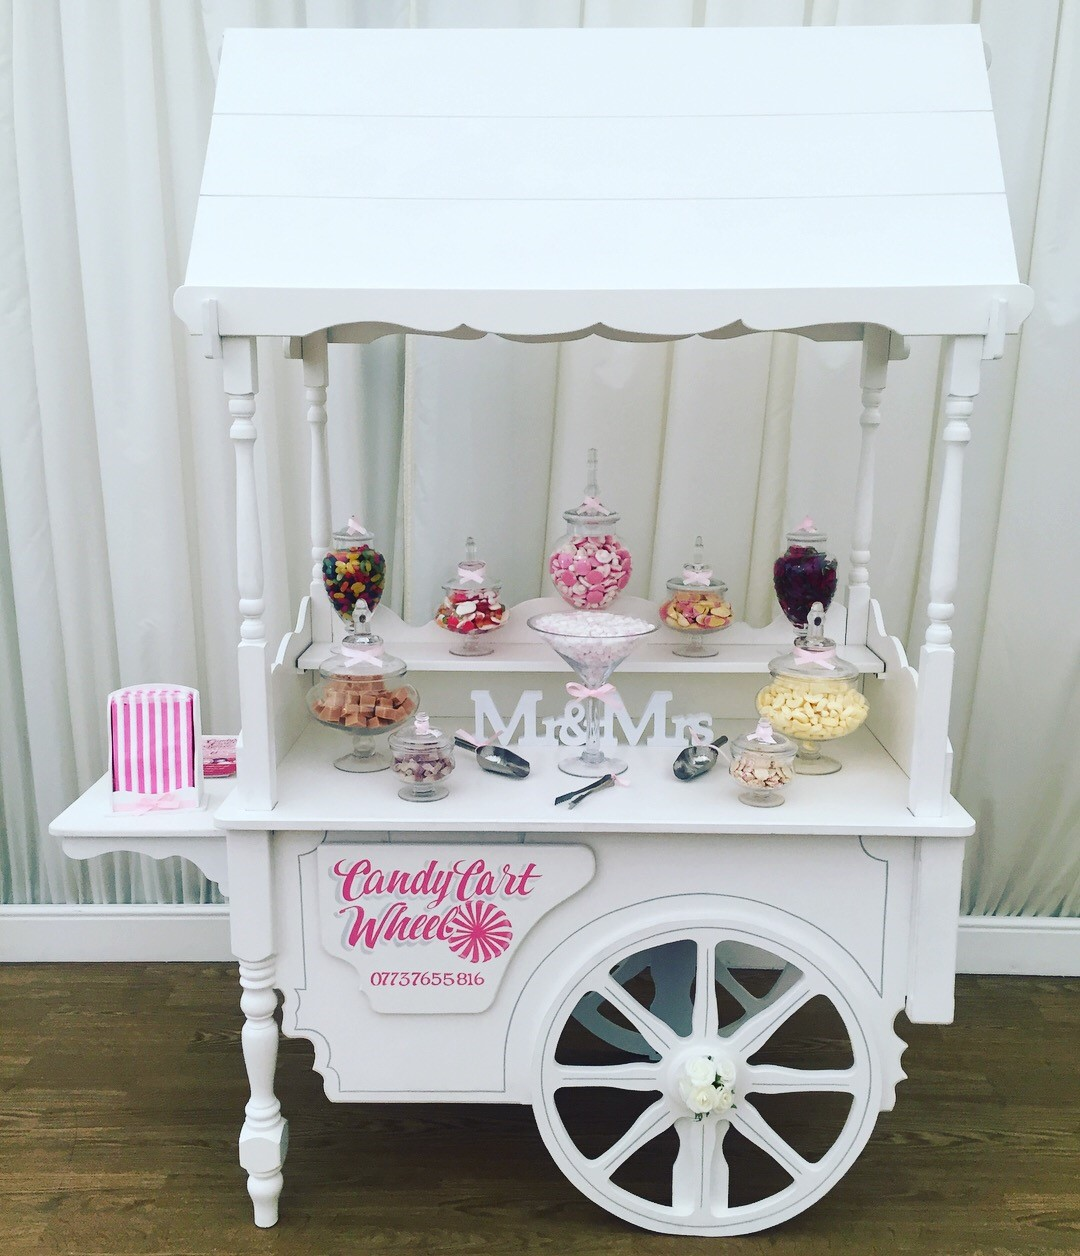 Candy Feast Wedding Cart - Quendon Hall